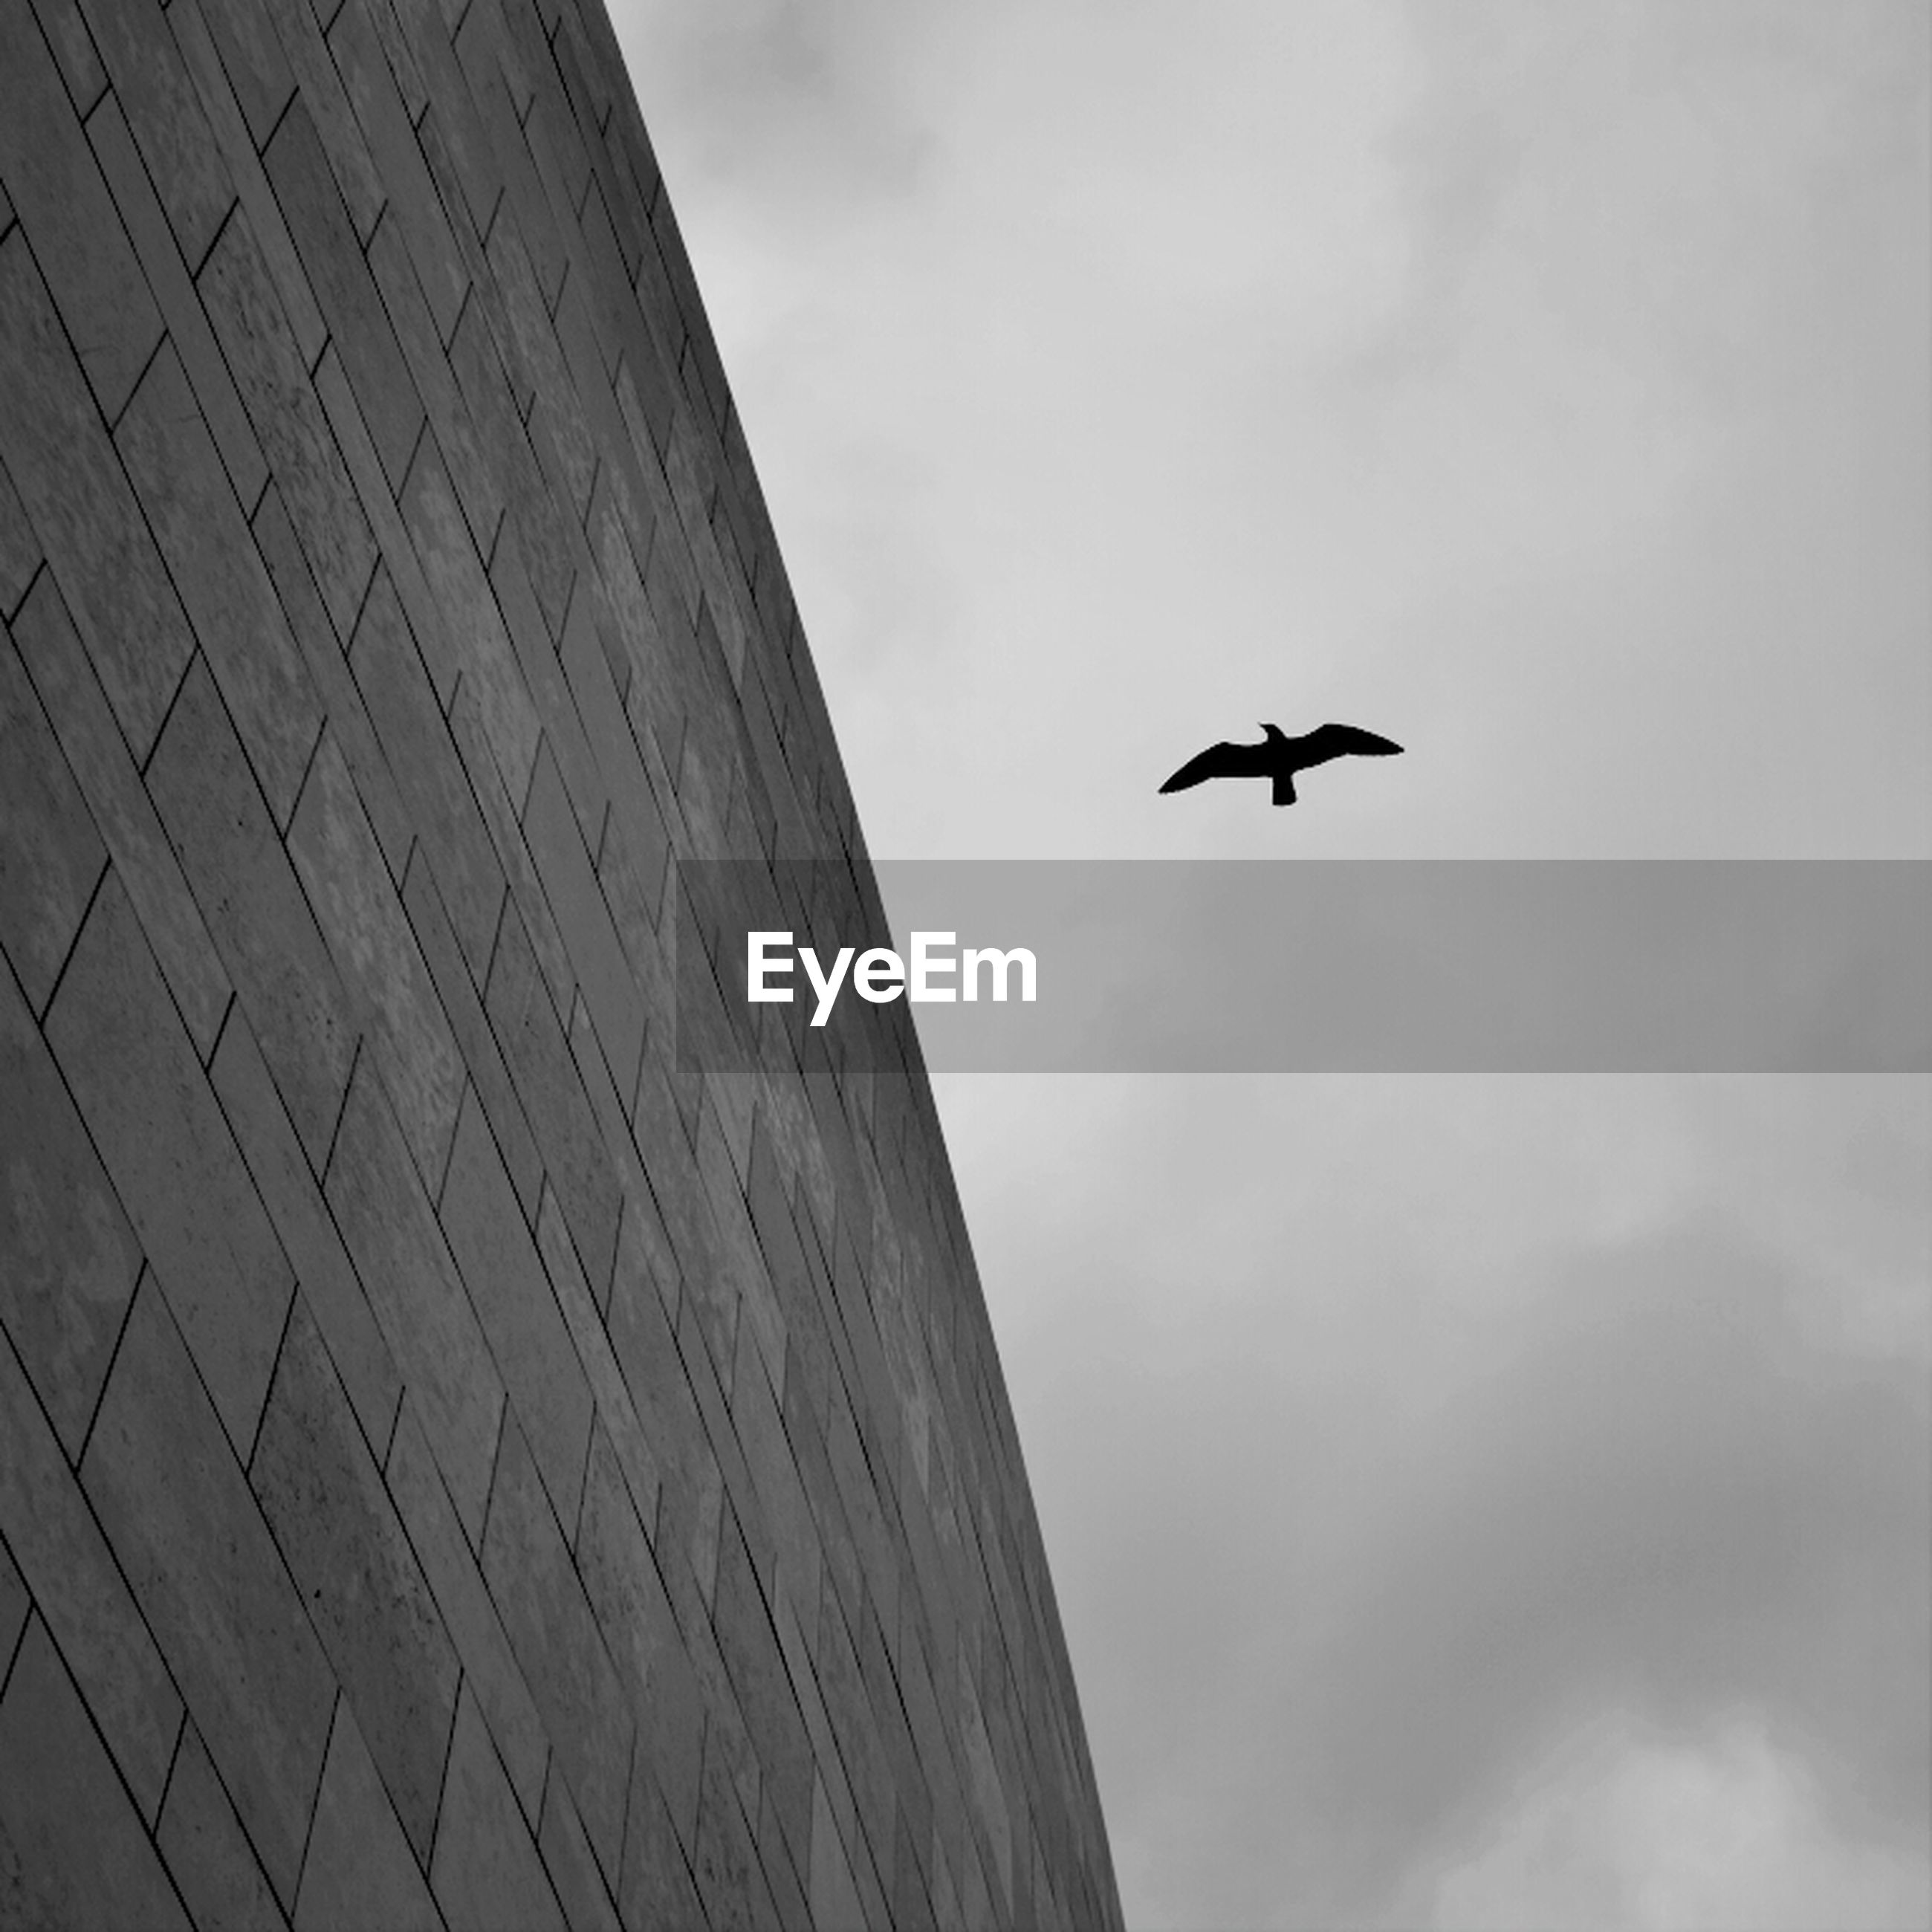 Low angle view of bird by wall against cloudy sky at dusk